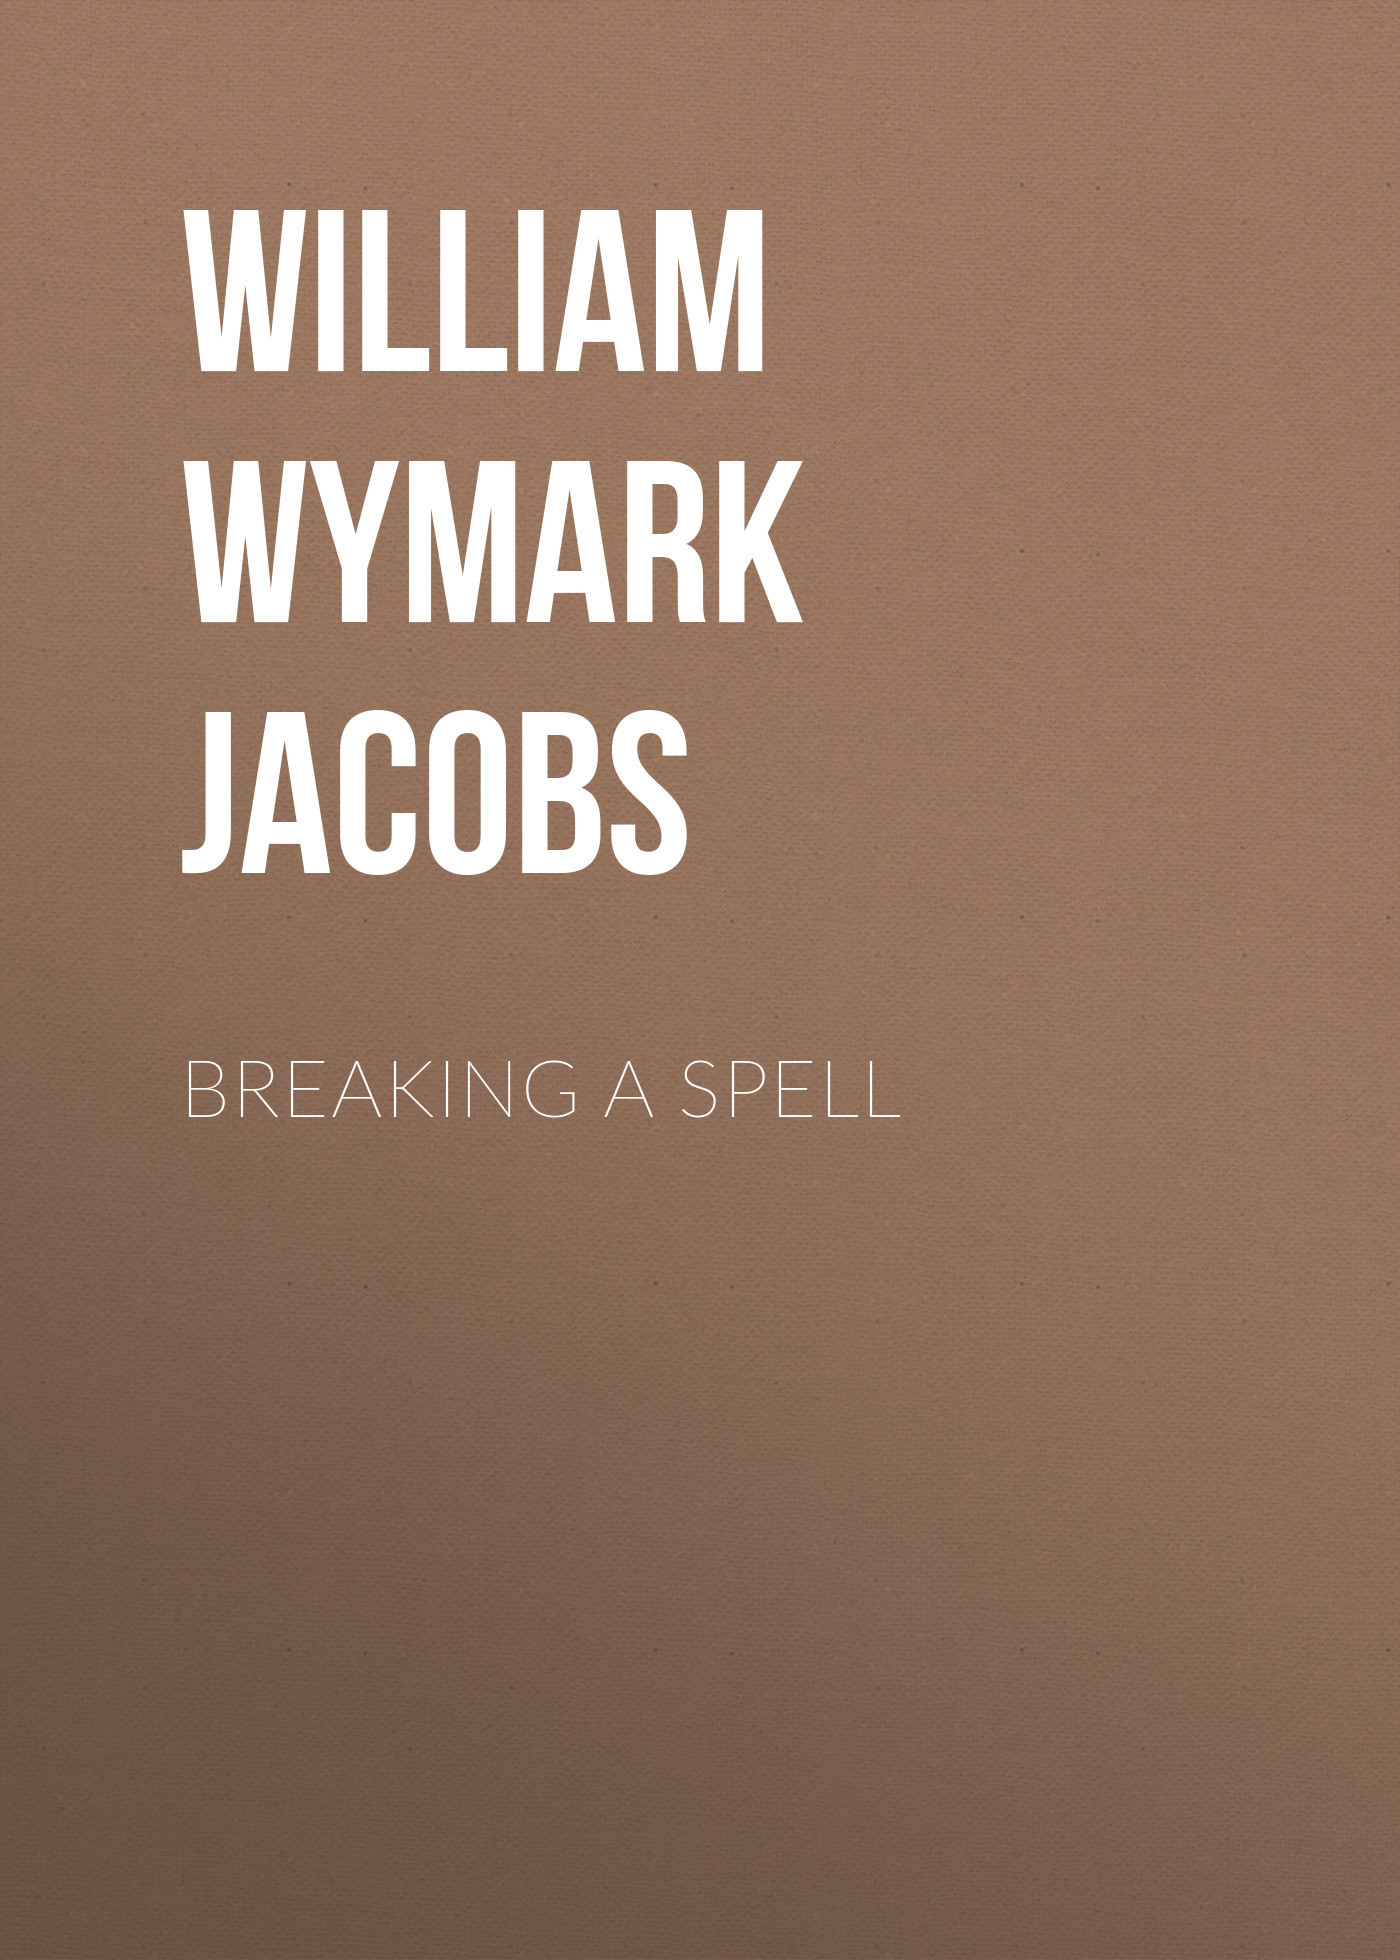 William Wymark Jacobs Breaking a Spell the comparative typology of spanish and english texts story and anecdotes for reading translating and retelling in spanish and english adapted by © linguistic rescue method level a1 a2